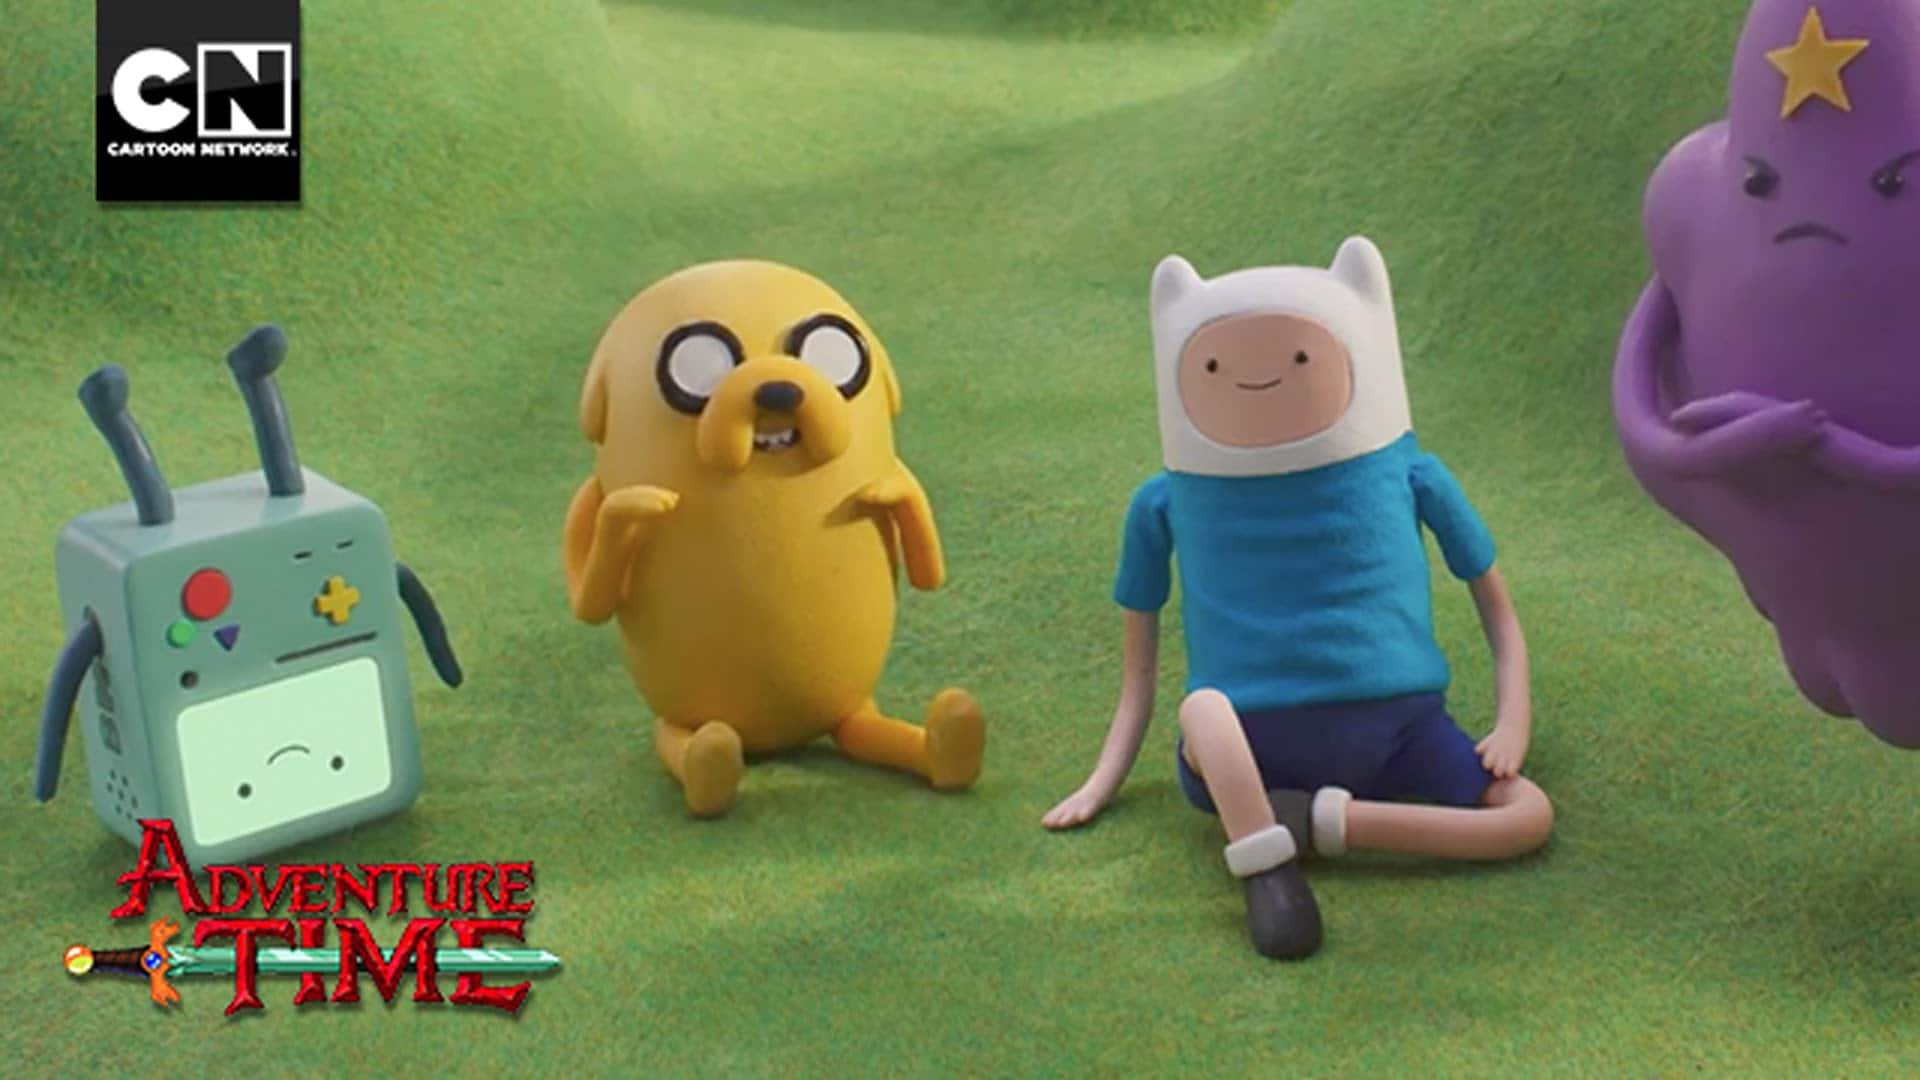 Cartoon Network USA Adventure Time Stop Motion Episode To Premiere On Thursday 14th January